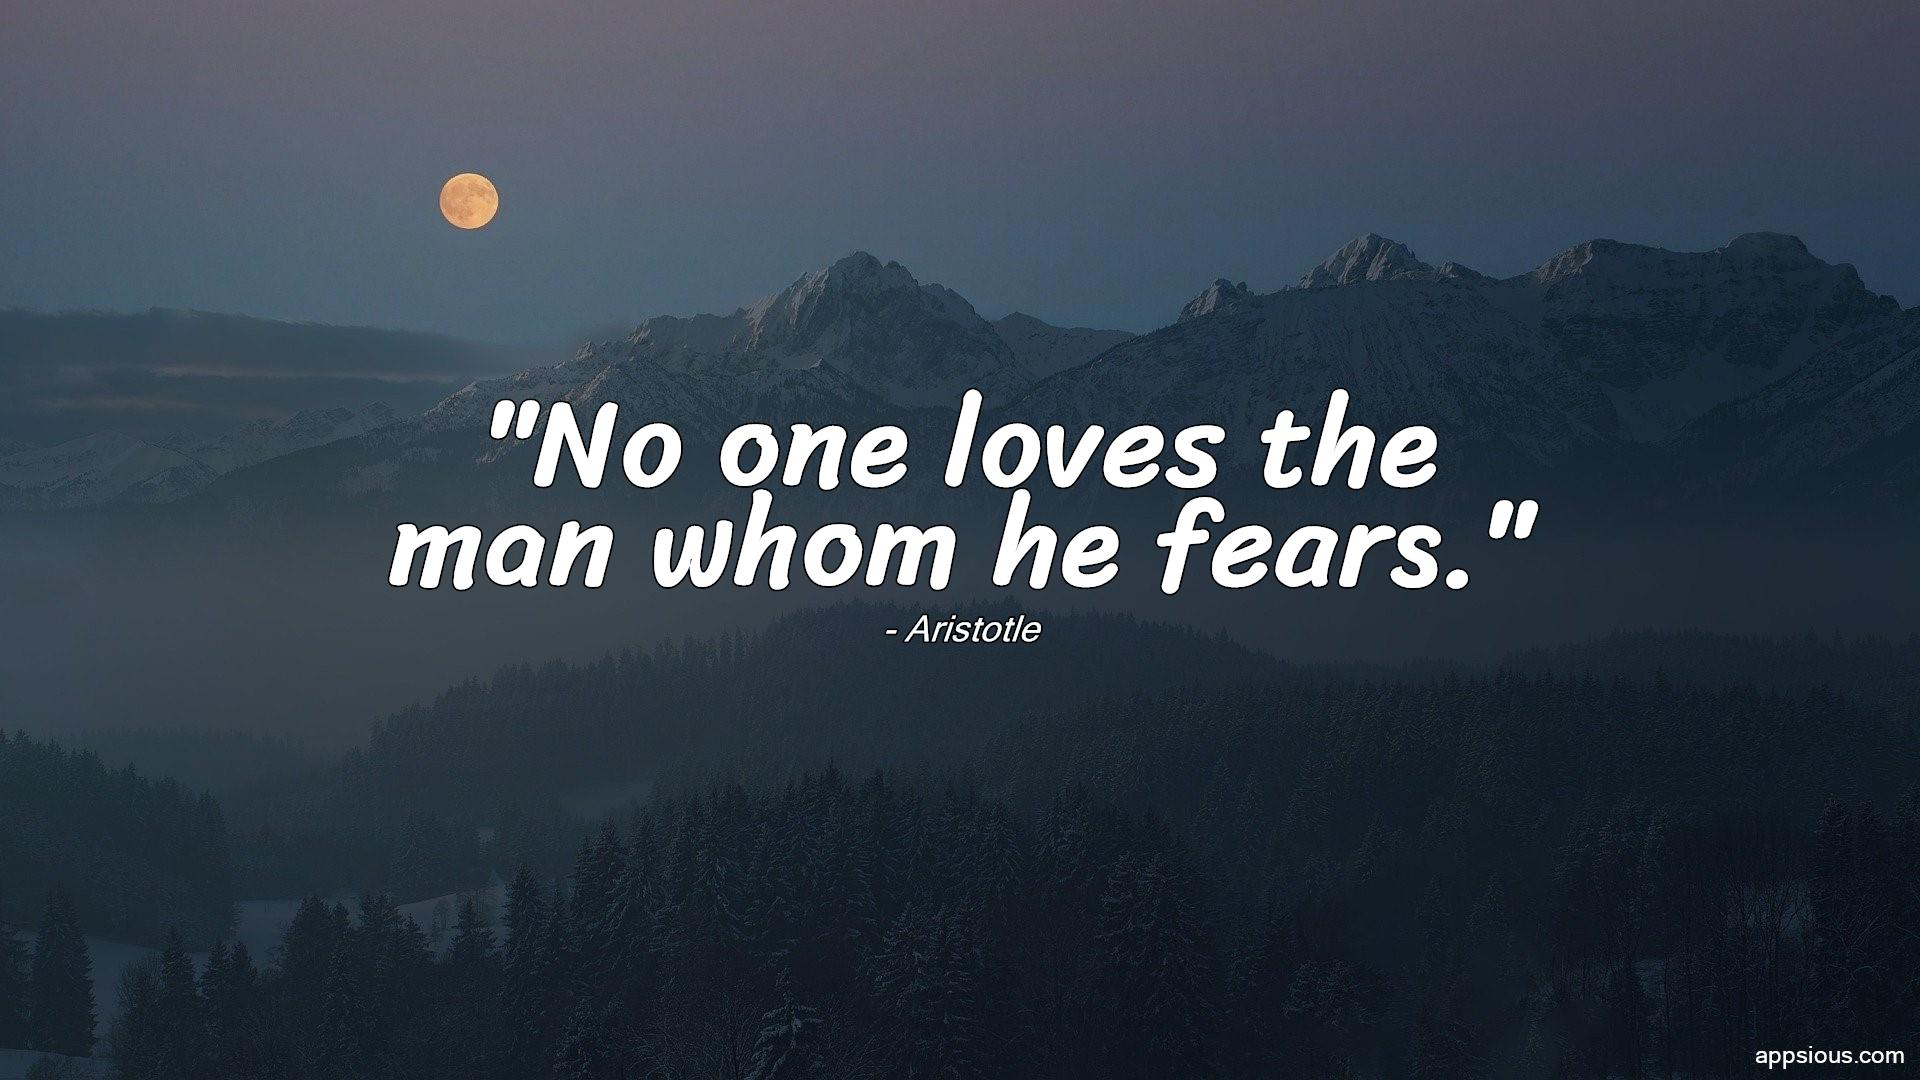 No one loves the man whom he fears.